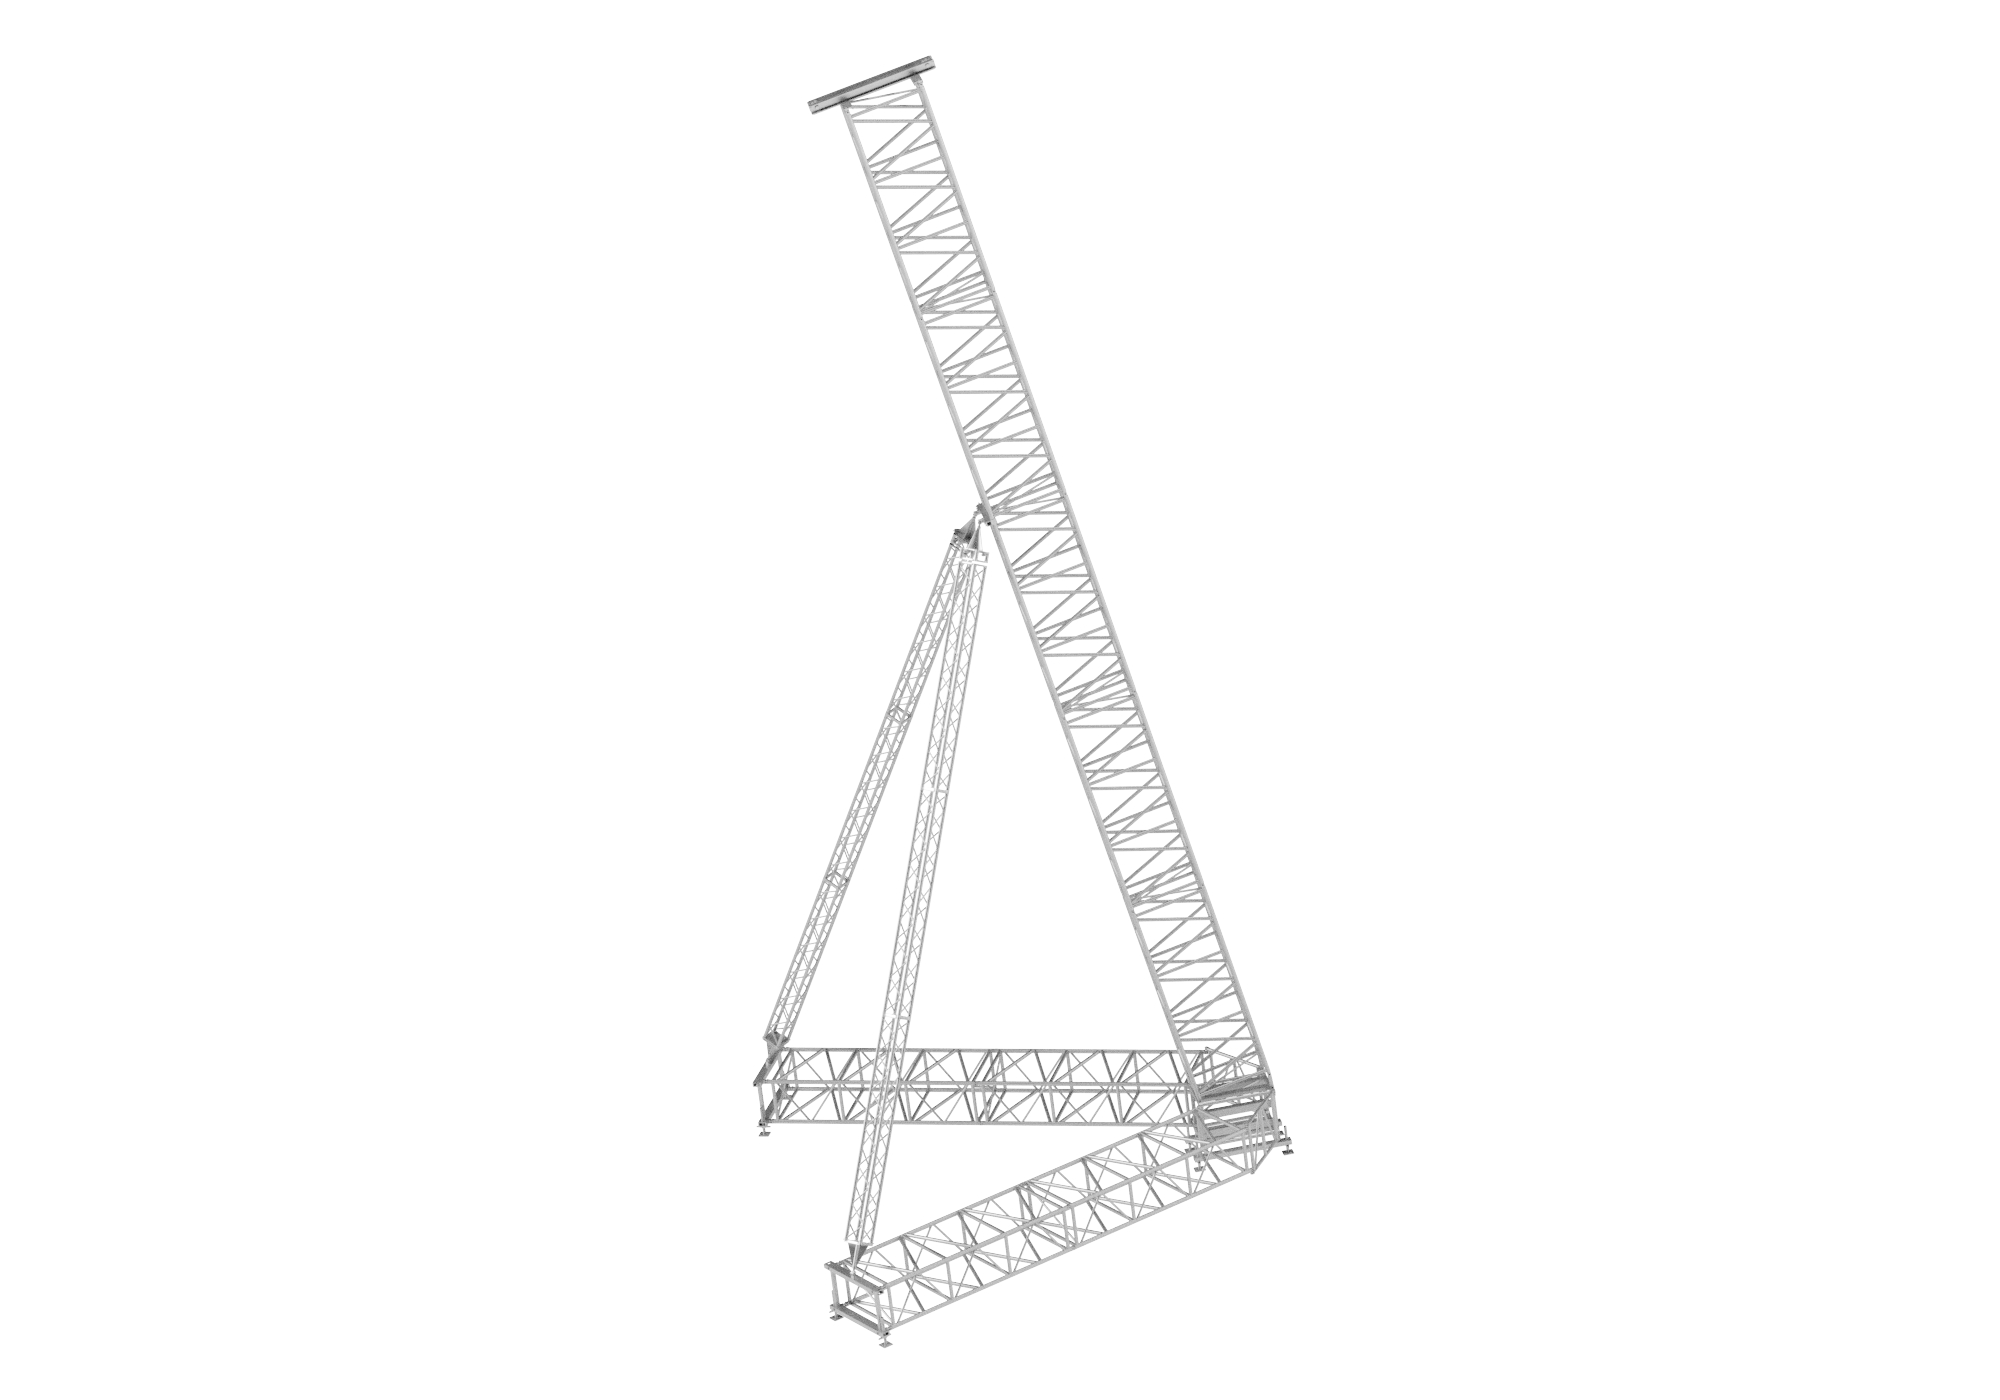 FLYINTOWER 16-2.000 - Support tower for 2,000kg up to 16m